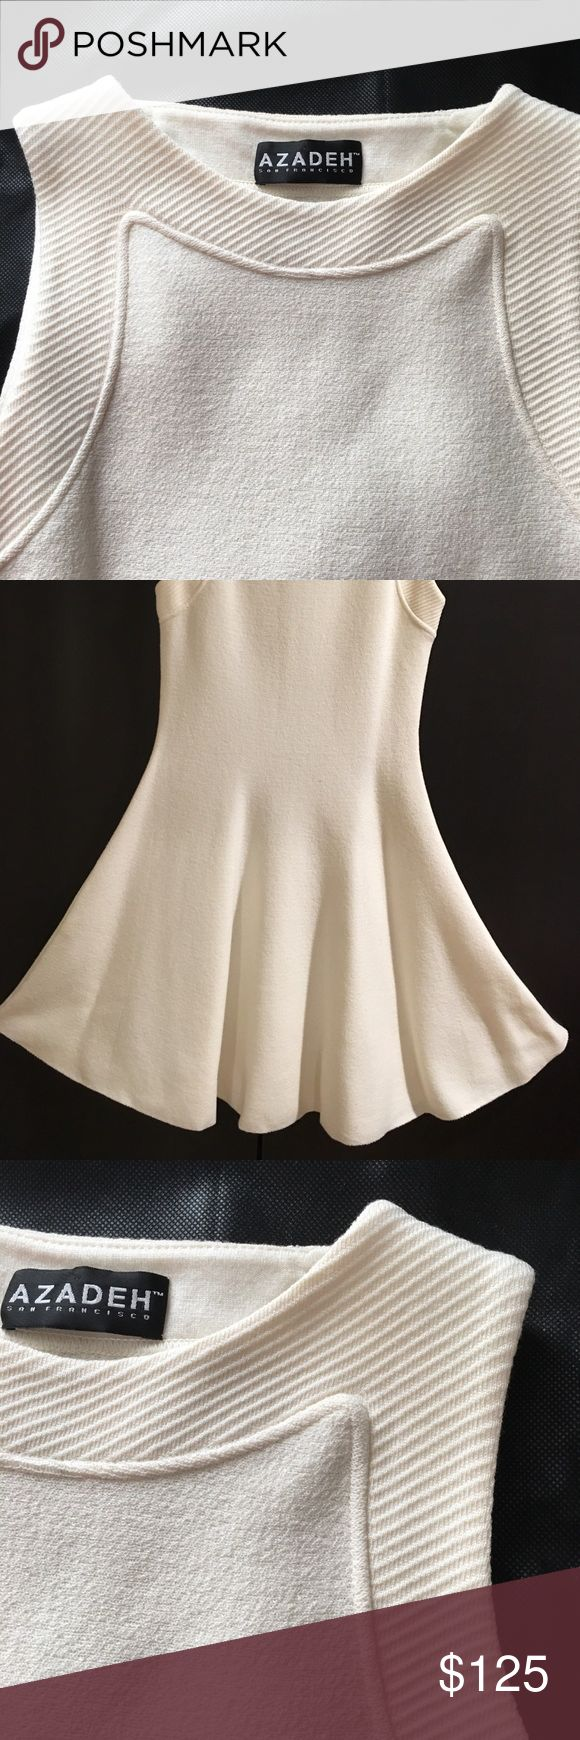 Azadeh Couture Cream Cocktail Dress Sleeveless cream-colored dress that is a brilliantly versatile piece in any wardrobe. From the international designer Azadeh's Florence collection, its fit-and-flare is pure comfort. Azadeh Couture Dresses